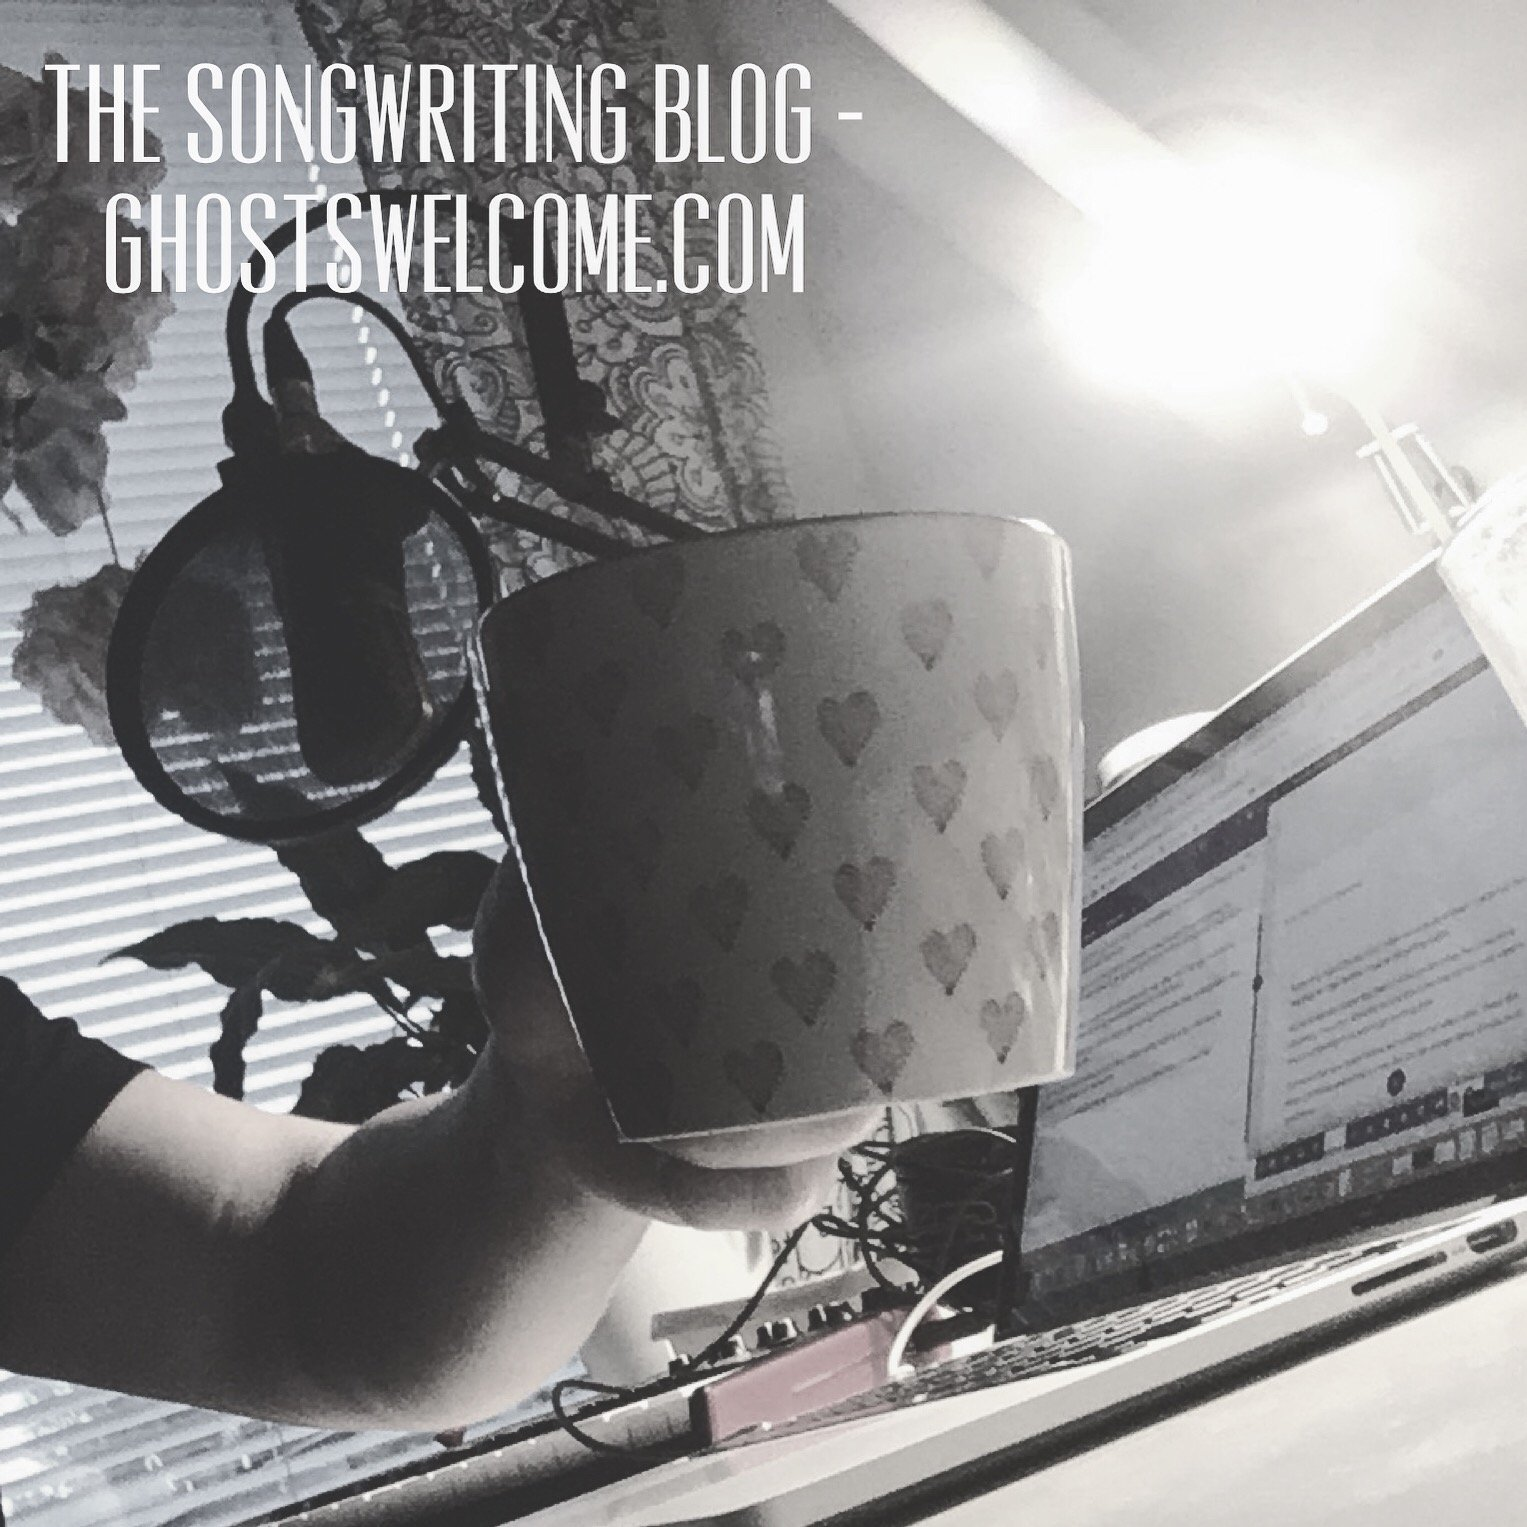 Do you have dreams as a songwriter?